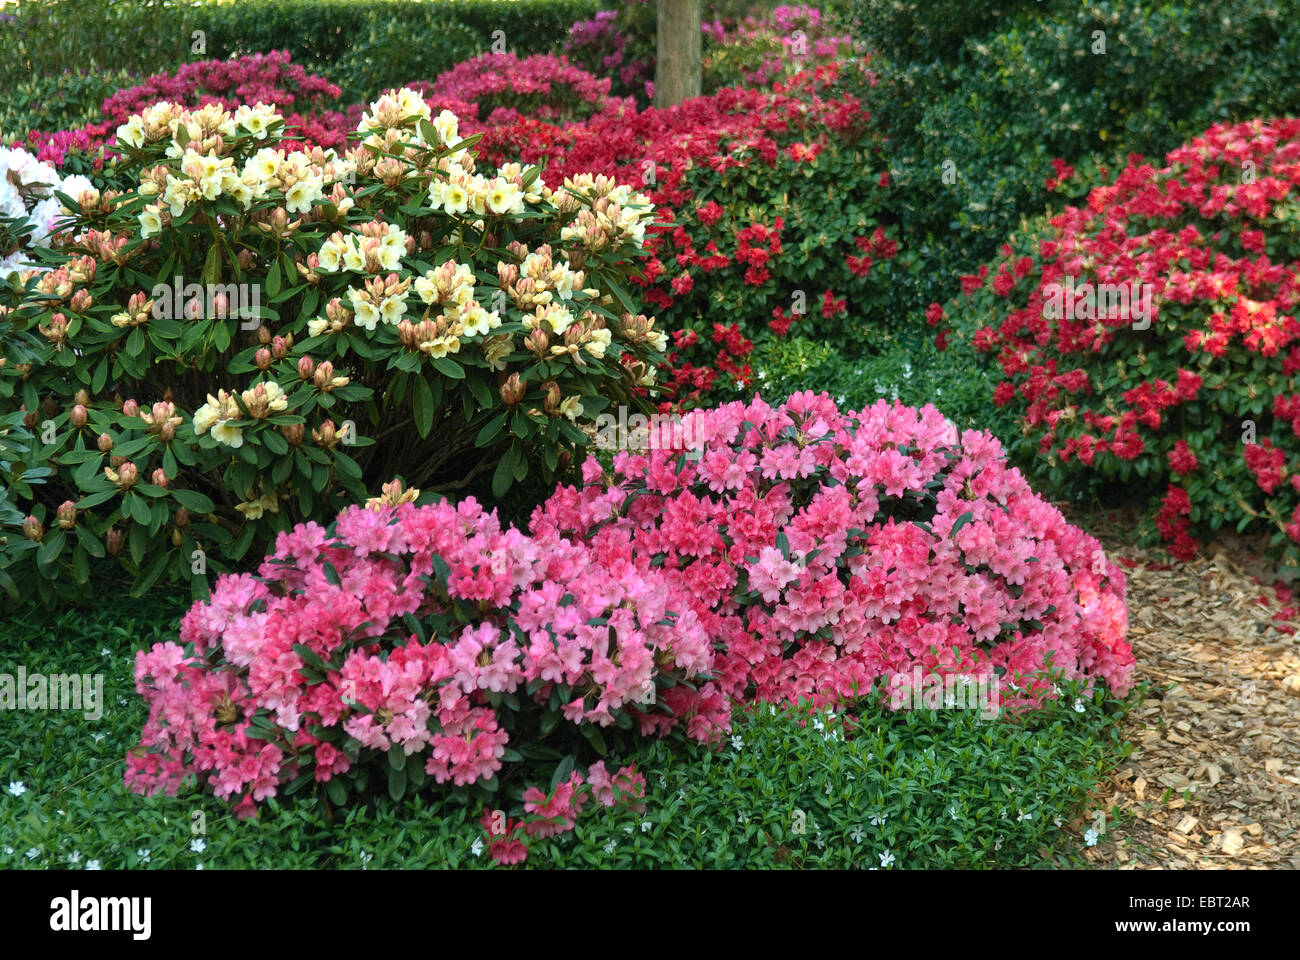 rhododendron (Rhododendron spec.), different rhododendron cultivars in a park - Stock Image